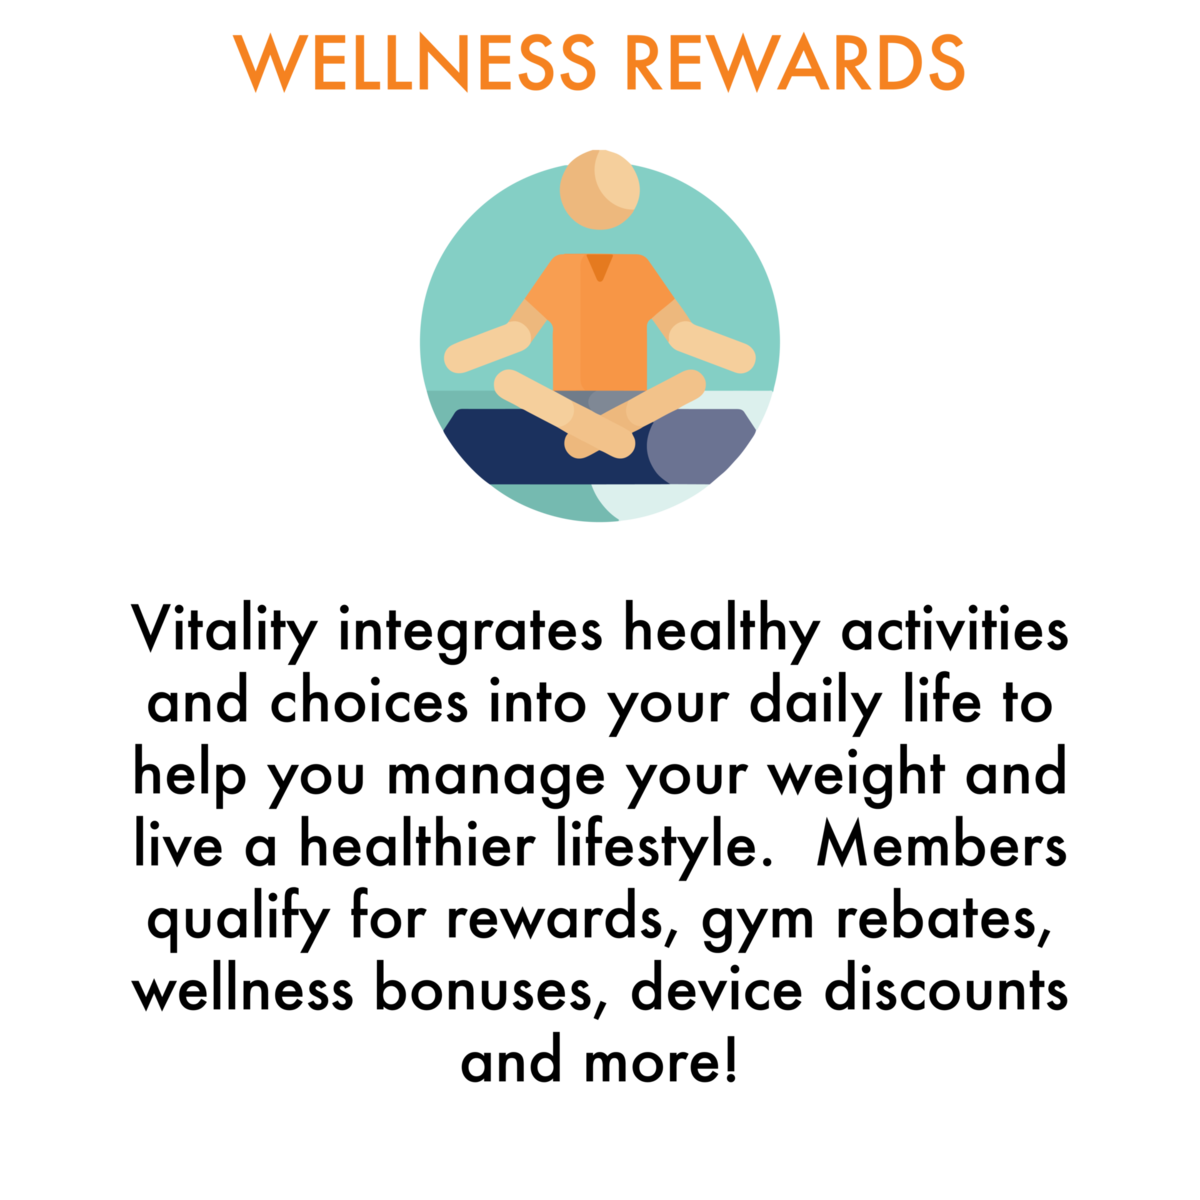 Wellness Rewards: Vitality integrates healthy activities and choices into your daily life to help you manage your weight and live a healthier lifestyle.  Members qualify for rewards, gym rebates, wellness bonuses, device discounts and more!